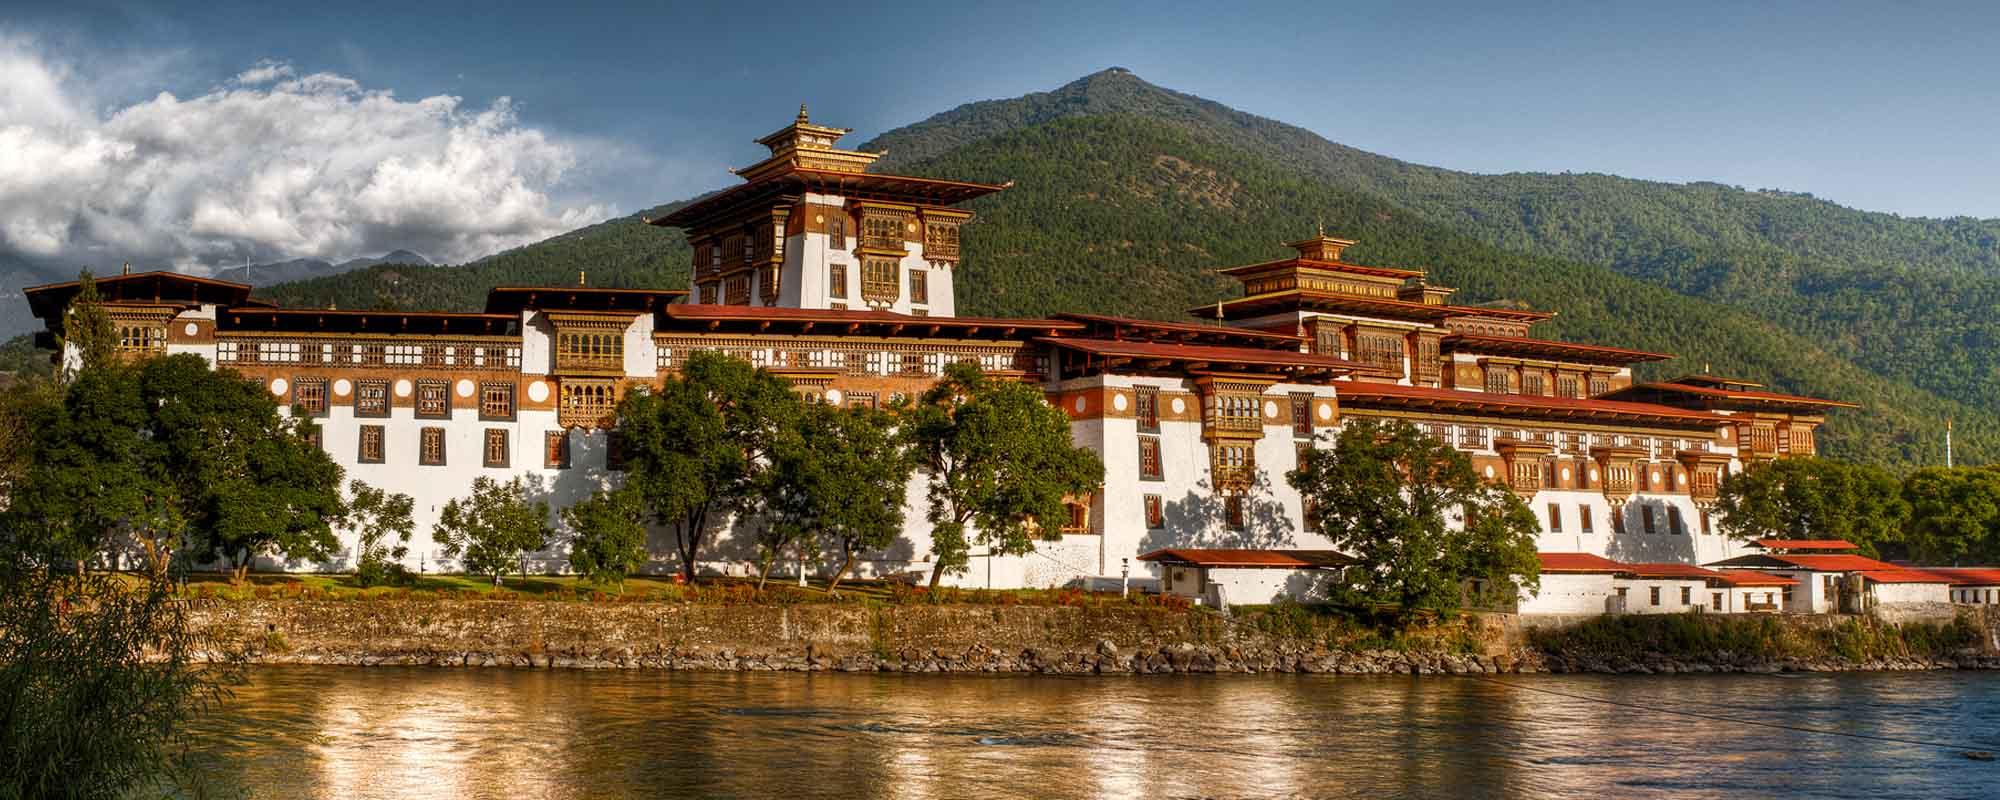 Travel to the land of paradise, Punakha Dzong